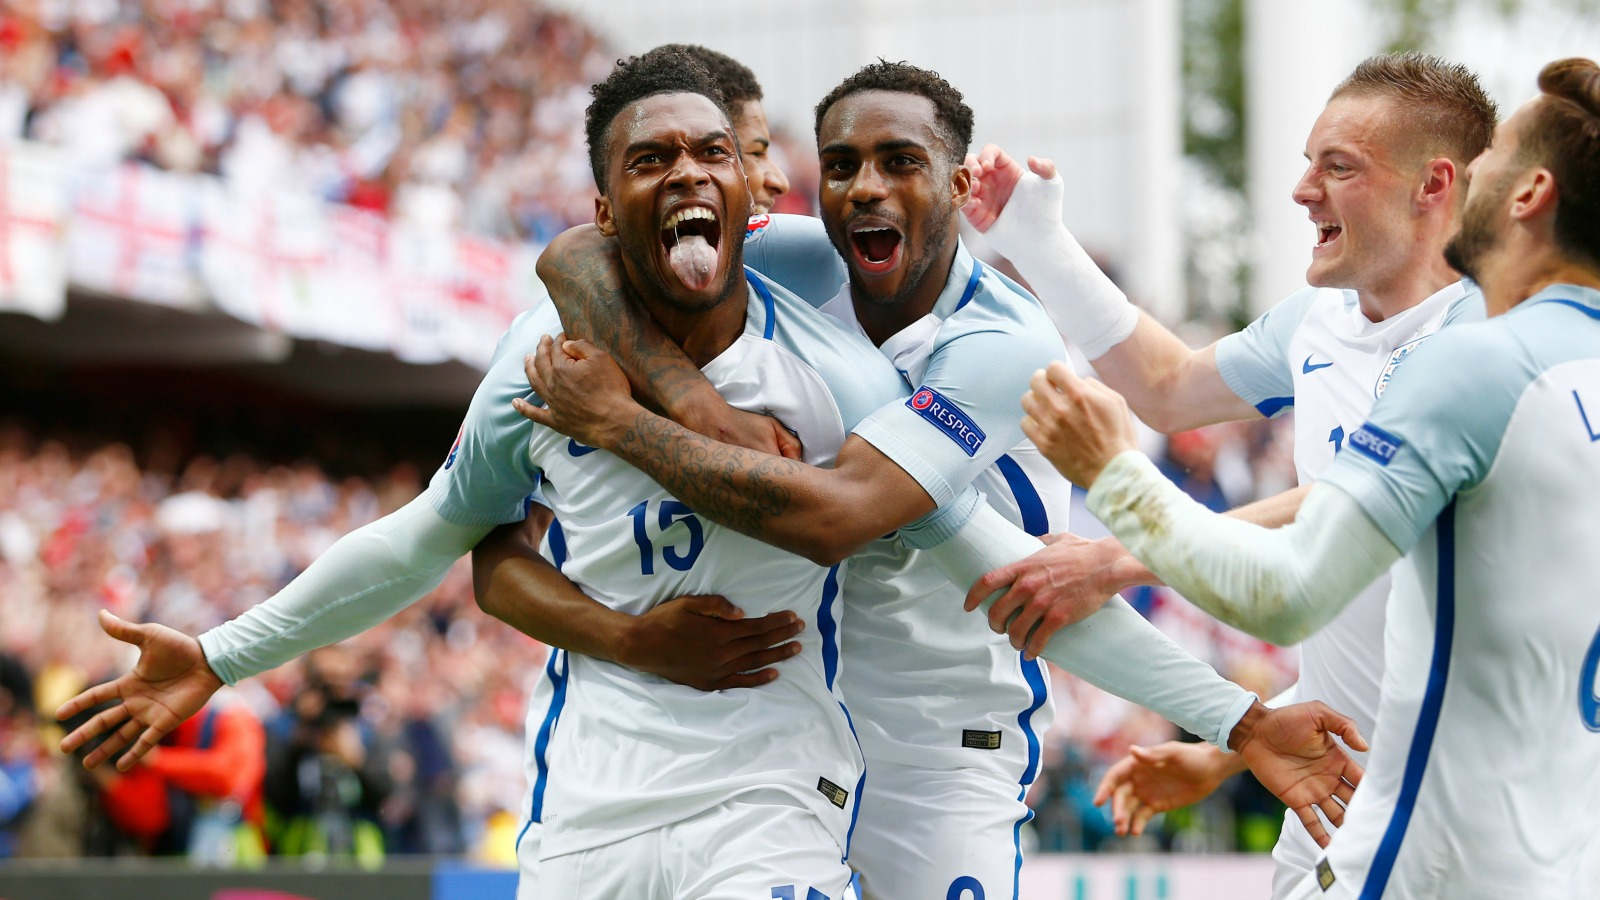 It's time to put the old, underachieving England behind - this is a new Three Lions